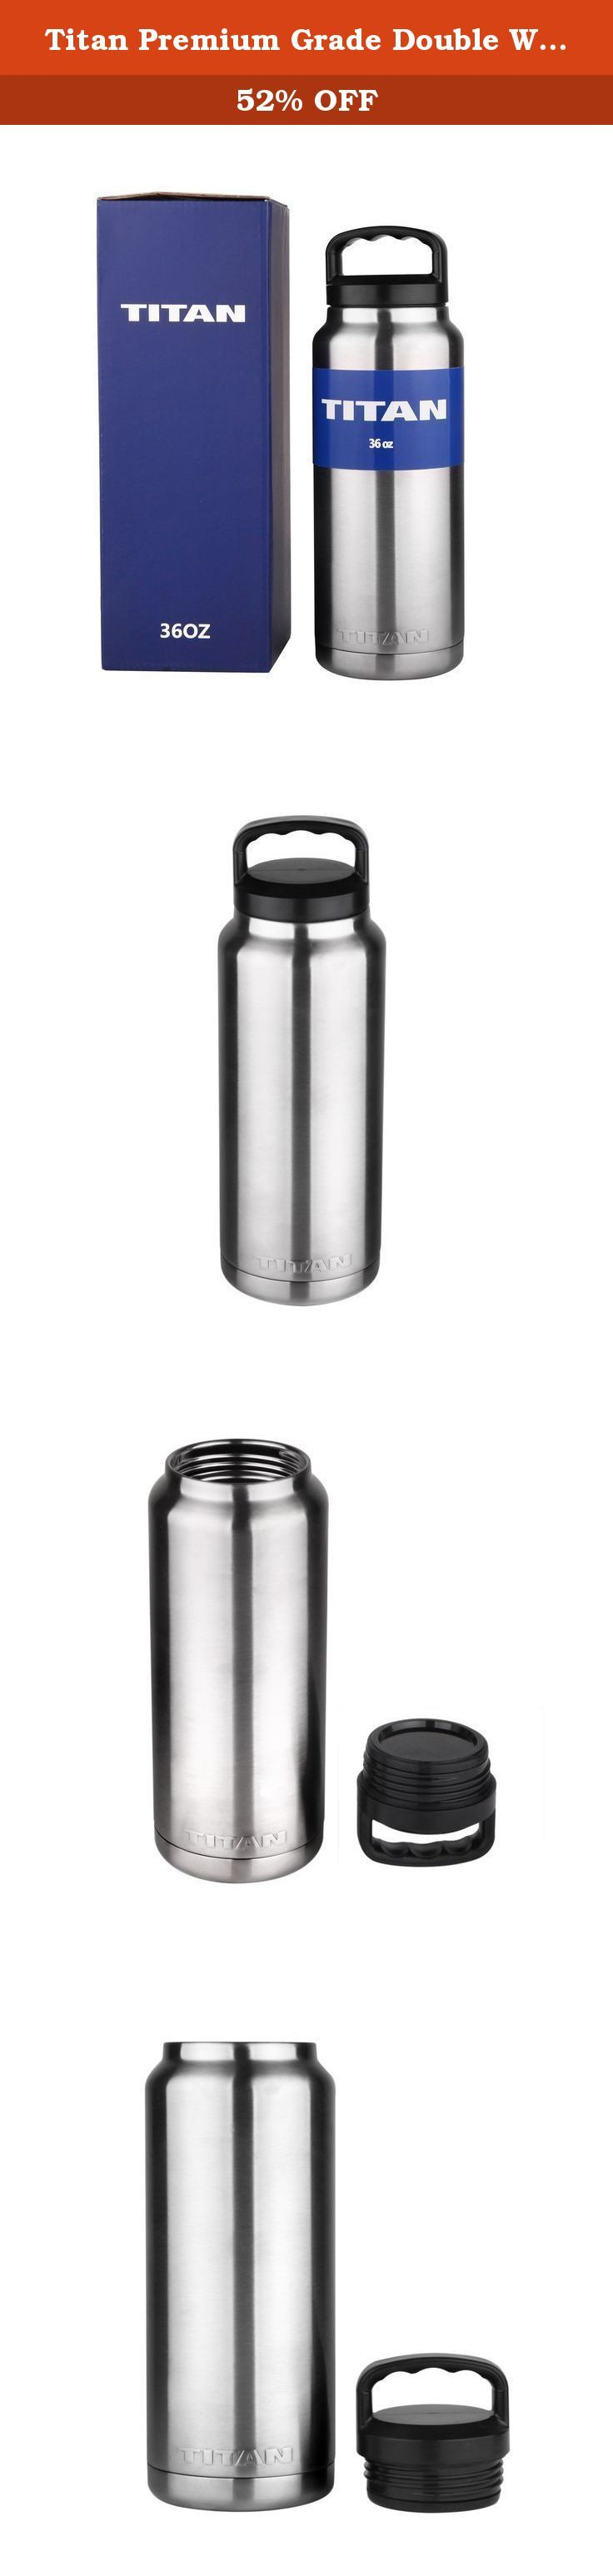 Titan Premium Grade Double Walled Vacuum Insulated Stainless Steel Bottle - Keeps COLD and HOT - Compare to Yeti and RTIC (36 oz). TITAN UP! The Titan is the industry standard of stainless steel drinkware. Made with quality craftsmanship of premium kitchen grade double walled vacuum sealed 18/8 stainless steel, the Titan is designed for maximum efficiency of ice retention, allowing beverages to remain cold and hot longer than other bottles. The Titan leaves absolutely no condensation so…